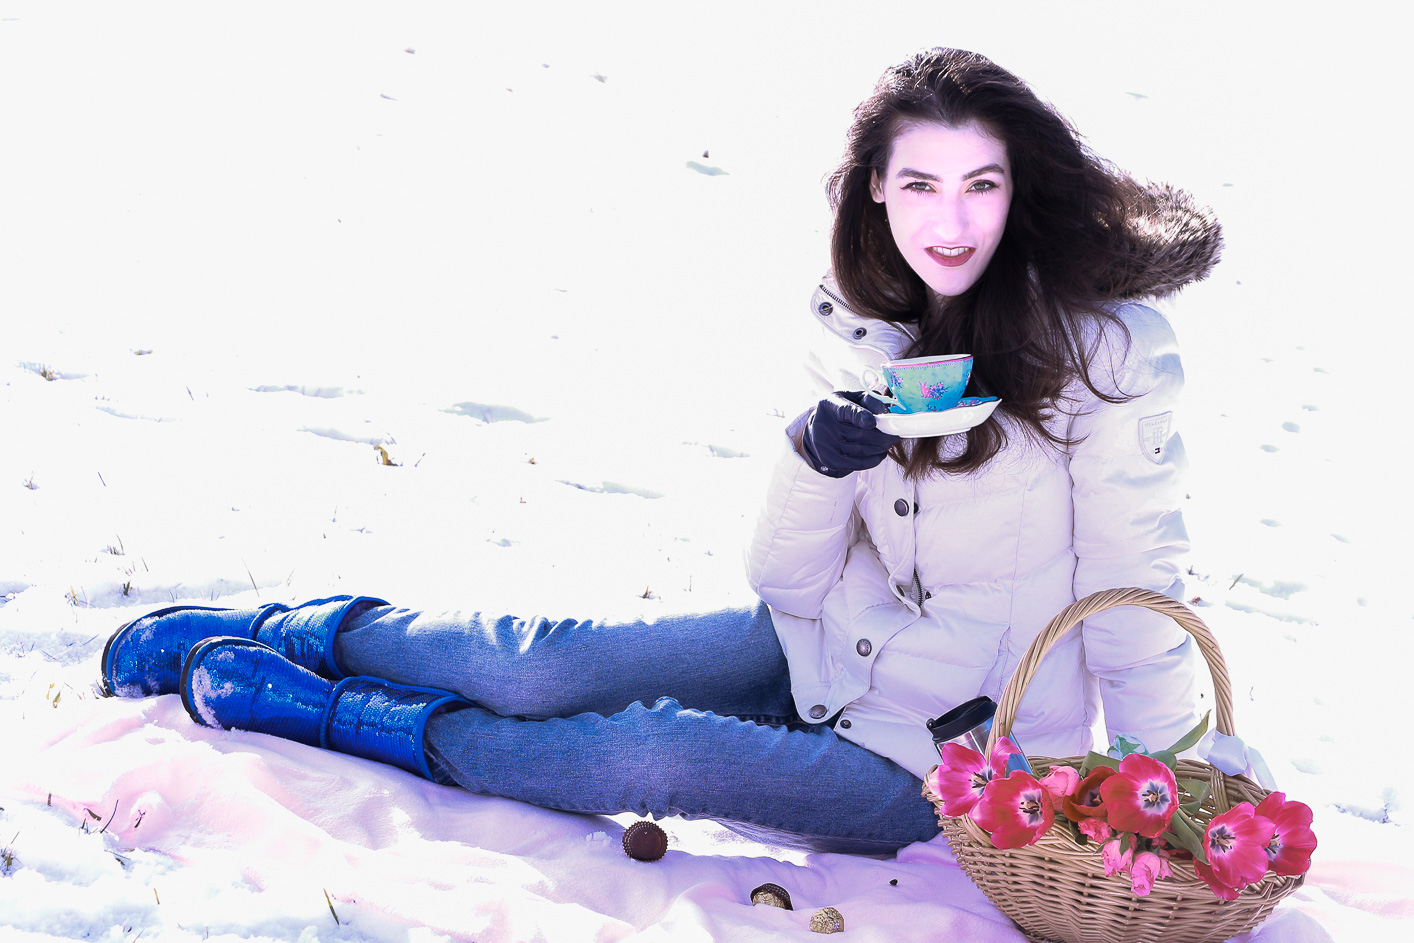 Fashion blogger Veronika Lipar of Brunette From Wall Street sharing how to wear the puffer jacket and UGG boots for a winter picnic in the snow